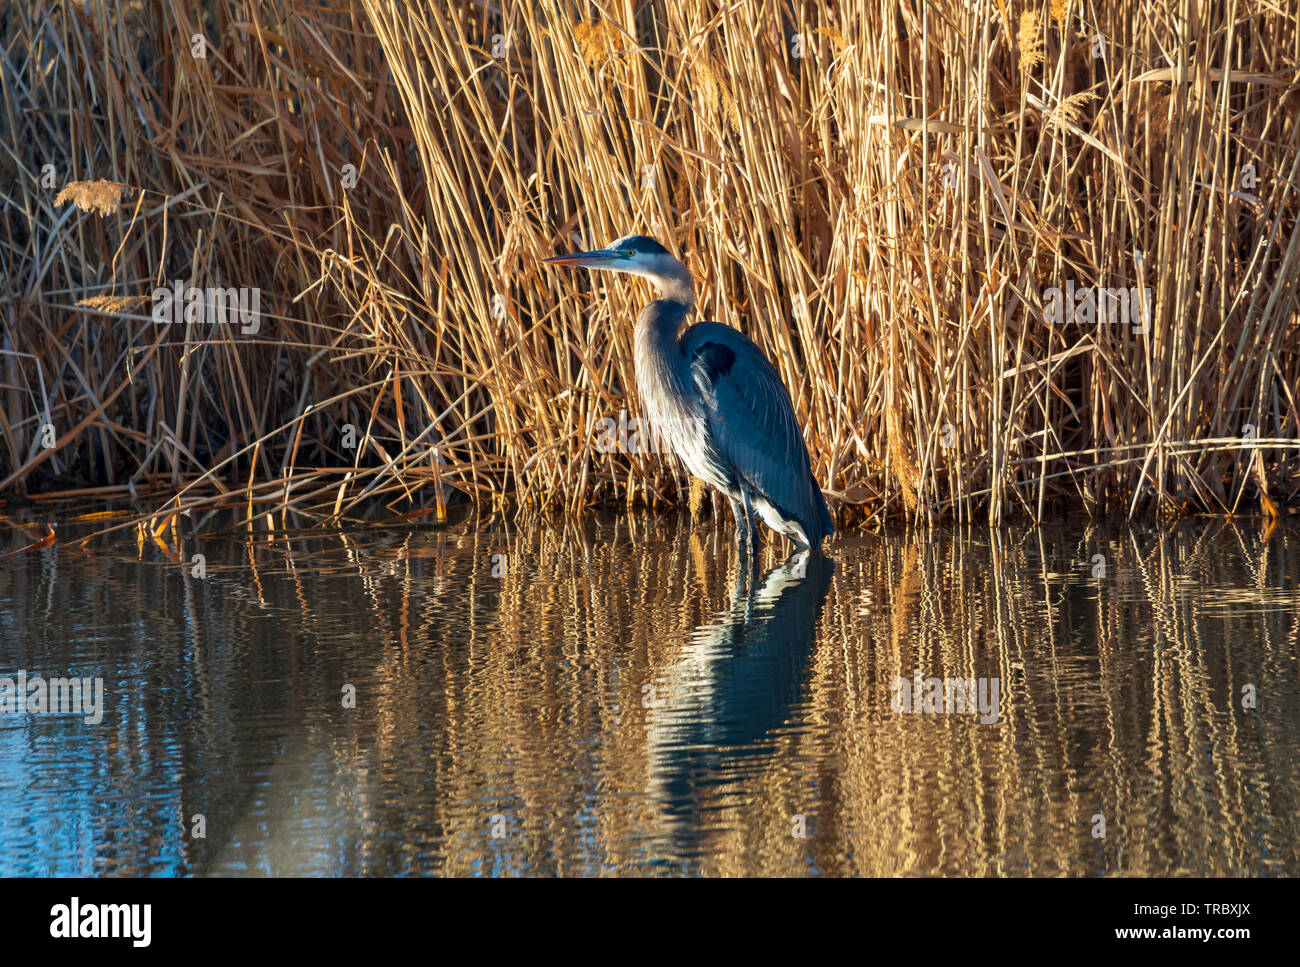 In this shot a Great Blue Heron (Ardea herodias) wades in the waters of the Bear River at the Bear River Migratory Bird Refuge in northern Utah. - Stock Image